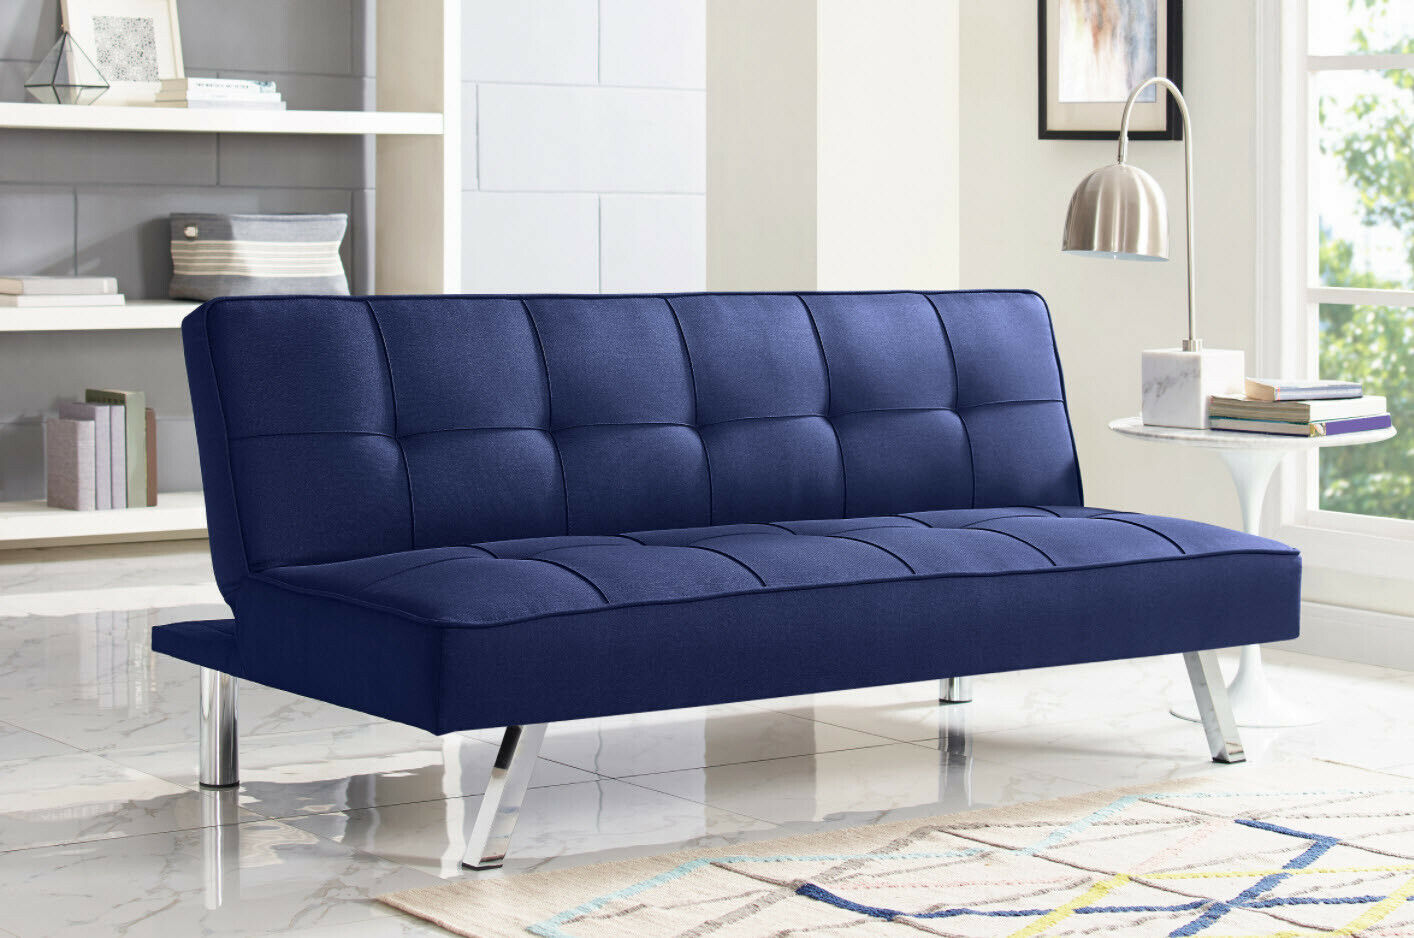 SOFA BED SLEEPER 3-Seat Blue Tufted Fabric Chrome Convertible Couch Futon